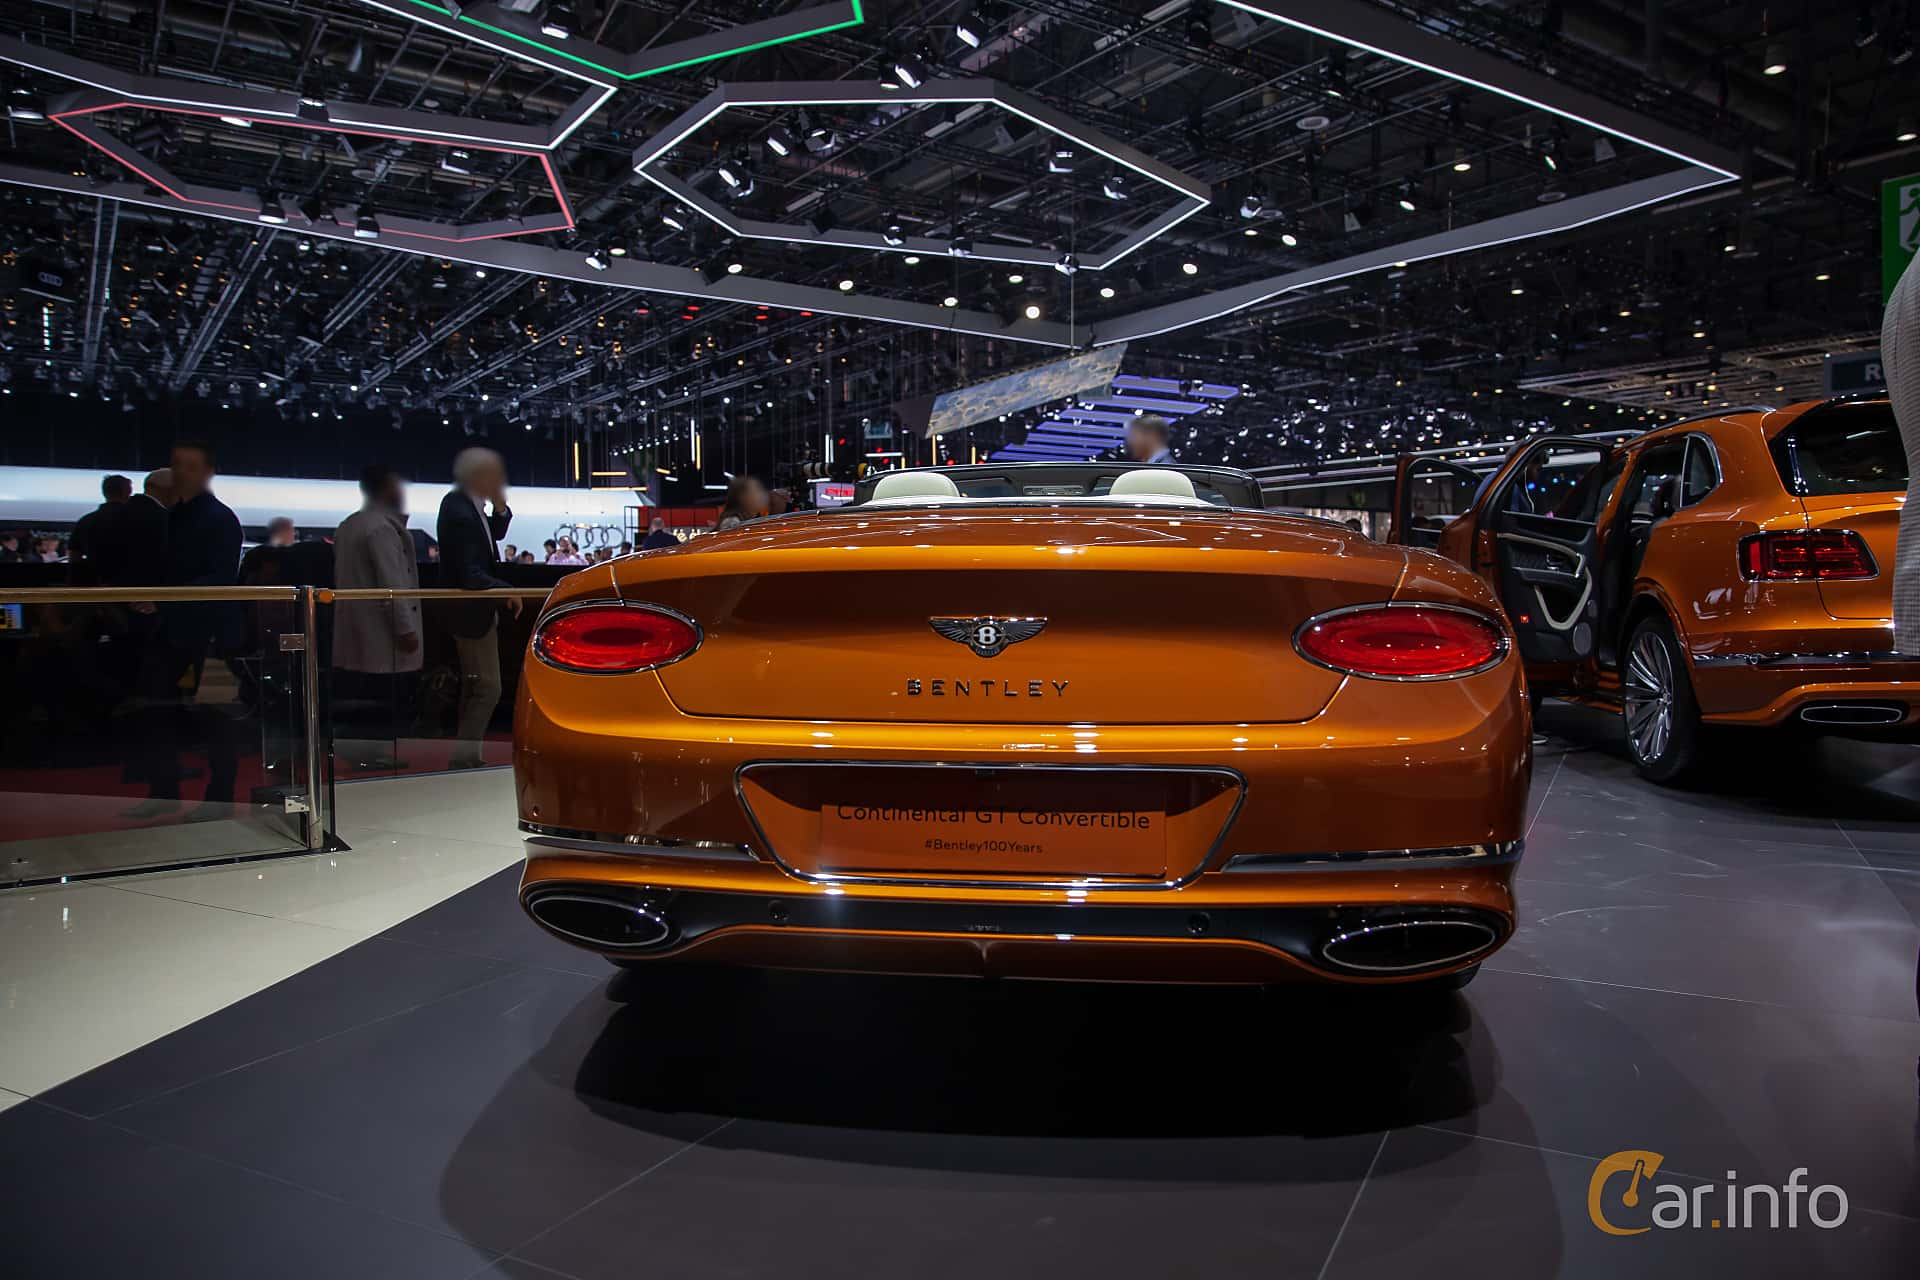 Back of Bentley Continental GTC 6.0 W12 TSI DCT, 635ps, 2019 at Geneva Motor Show 2019